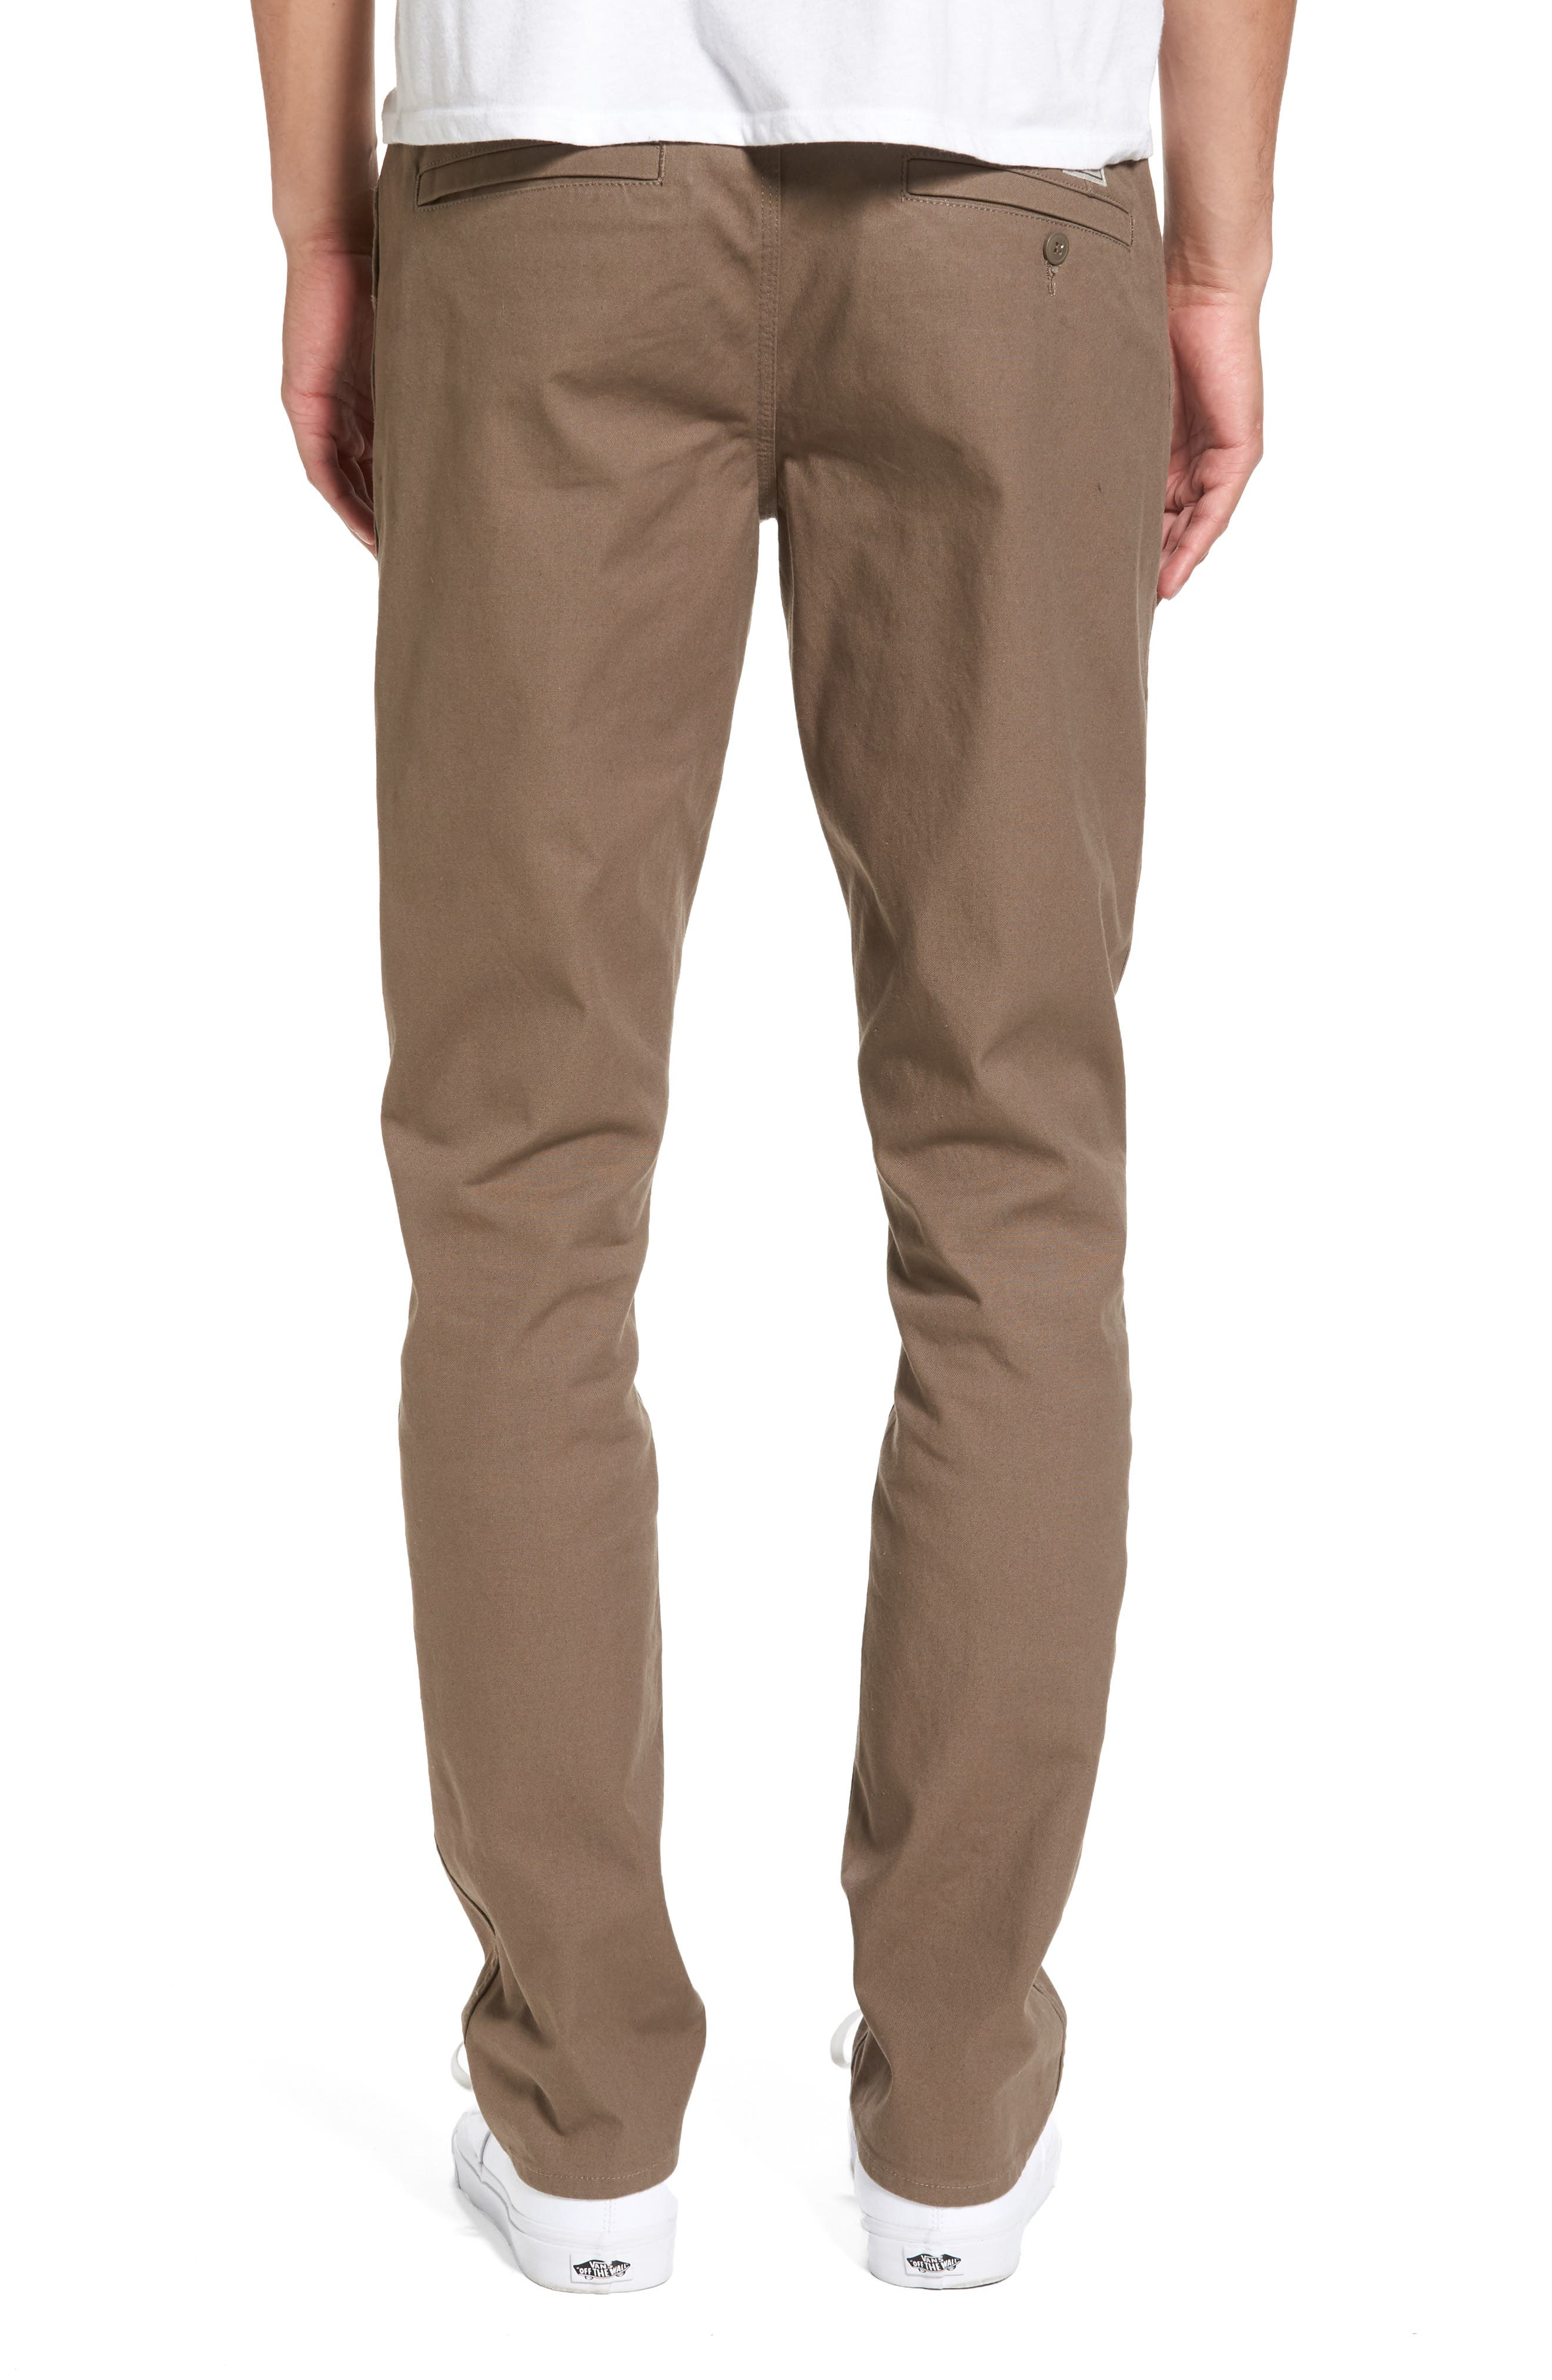 'VSM Gritter' Tapered Chinos,                             Alternate thumbnail 2, color,                             250